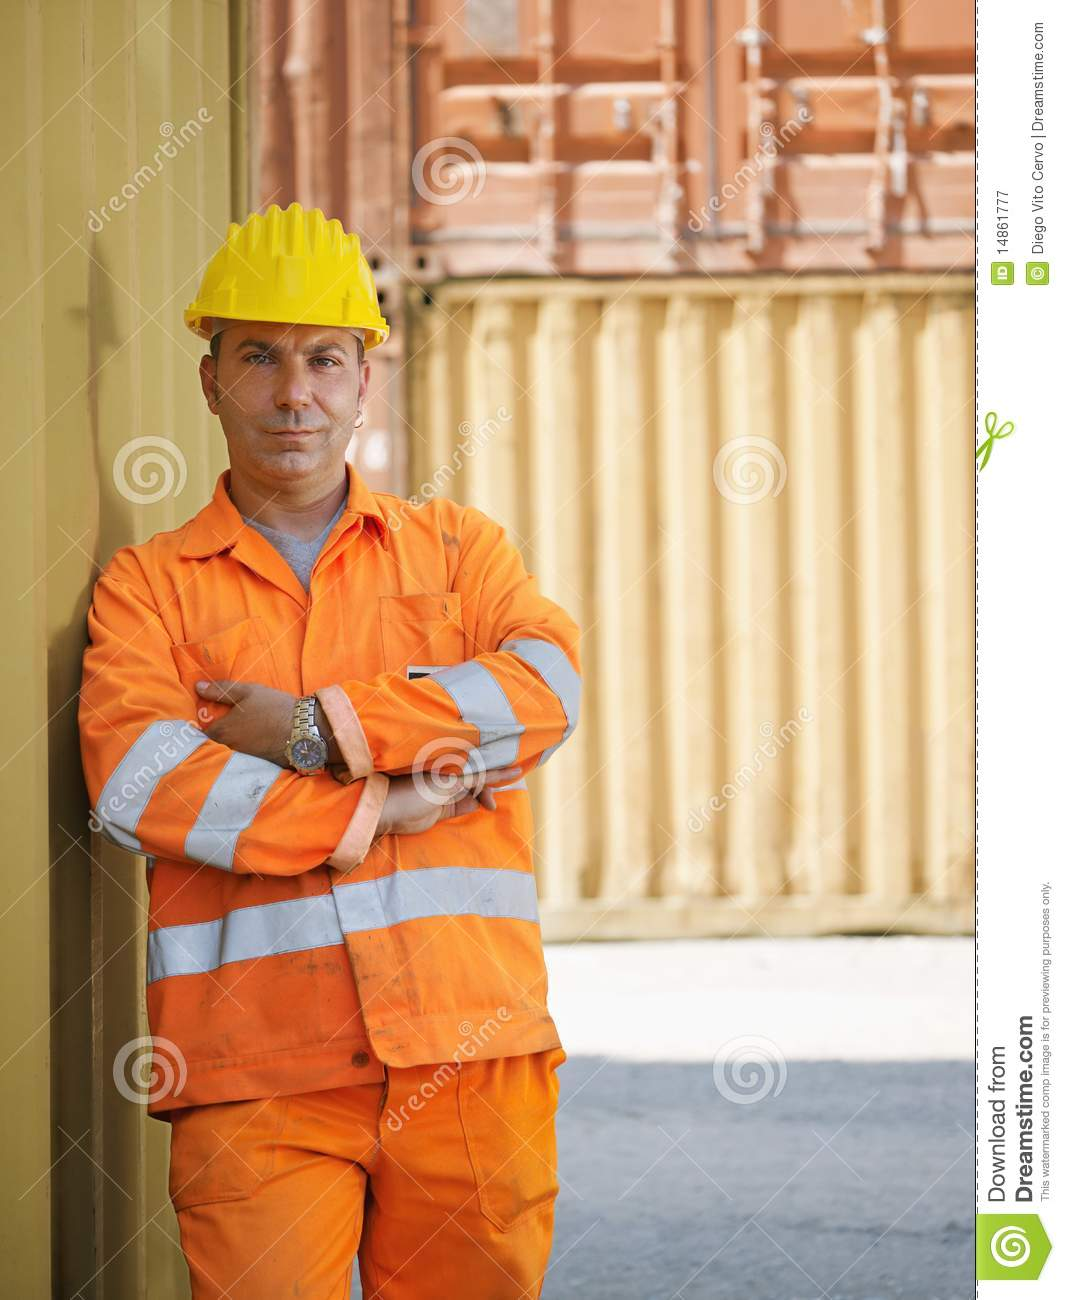 Industrial worker in warehouse